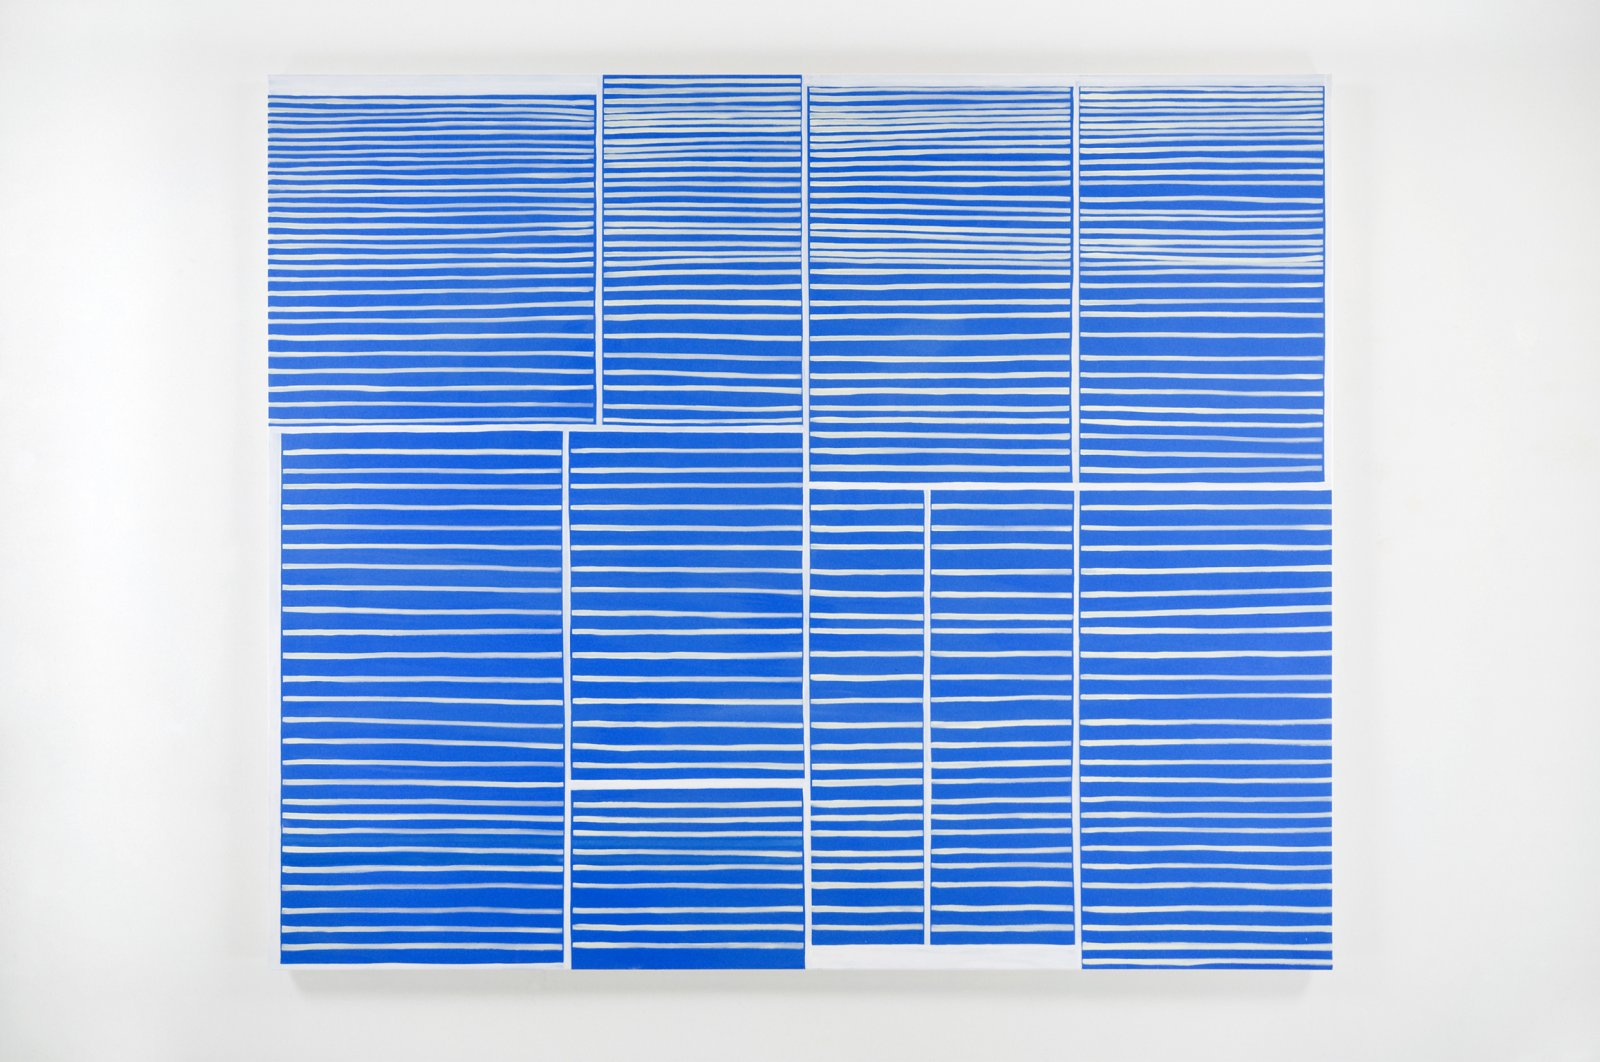 Elizabeth McIntosh, Differences Between Lines and Rectangles, 2010, oil on canvas, 75 x 80 in. (191 x 203 cm) by Elizabeth McIntosh